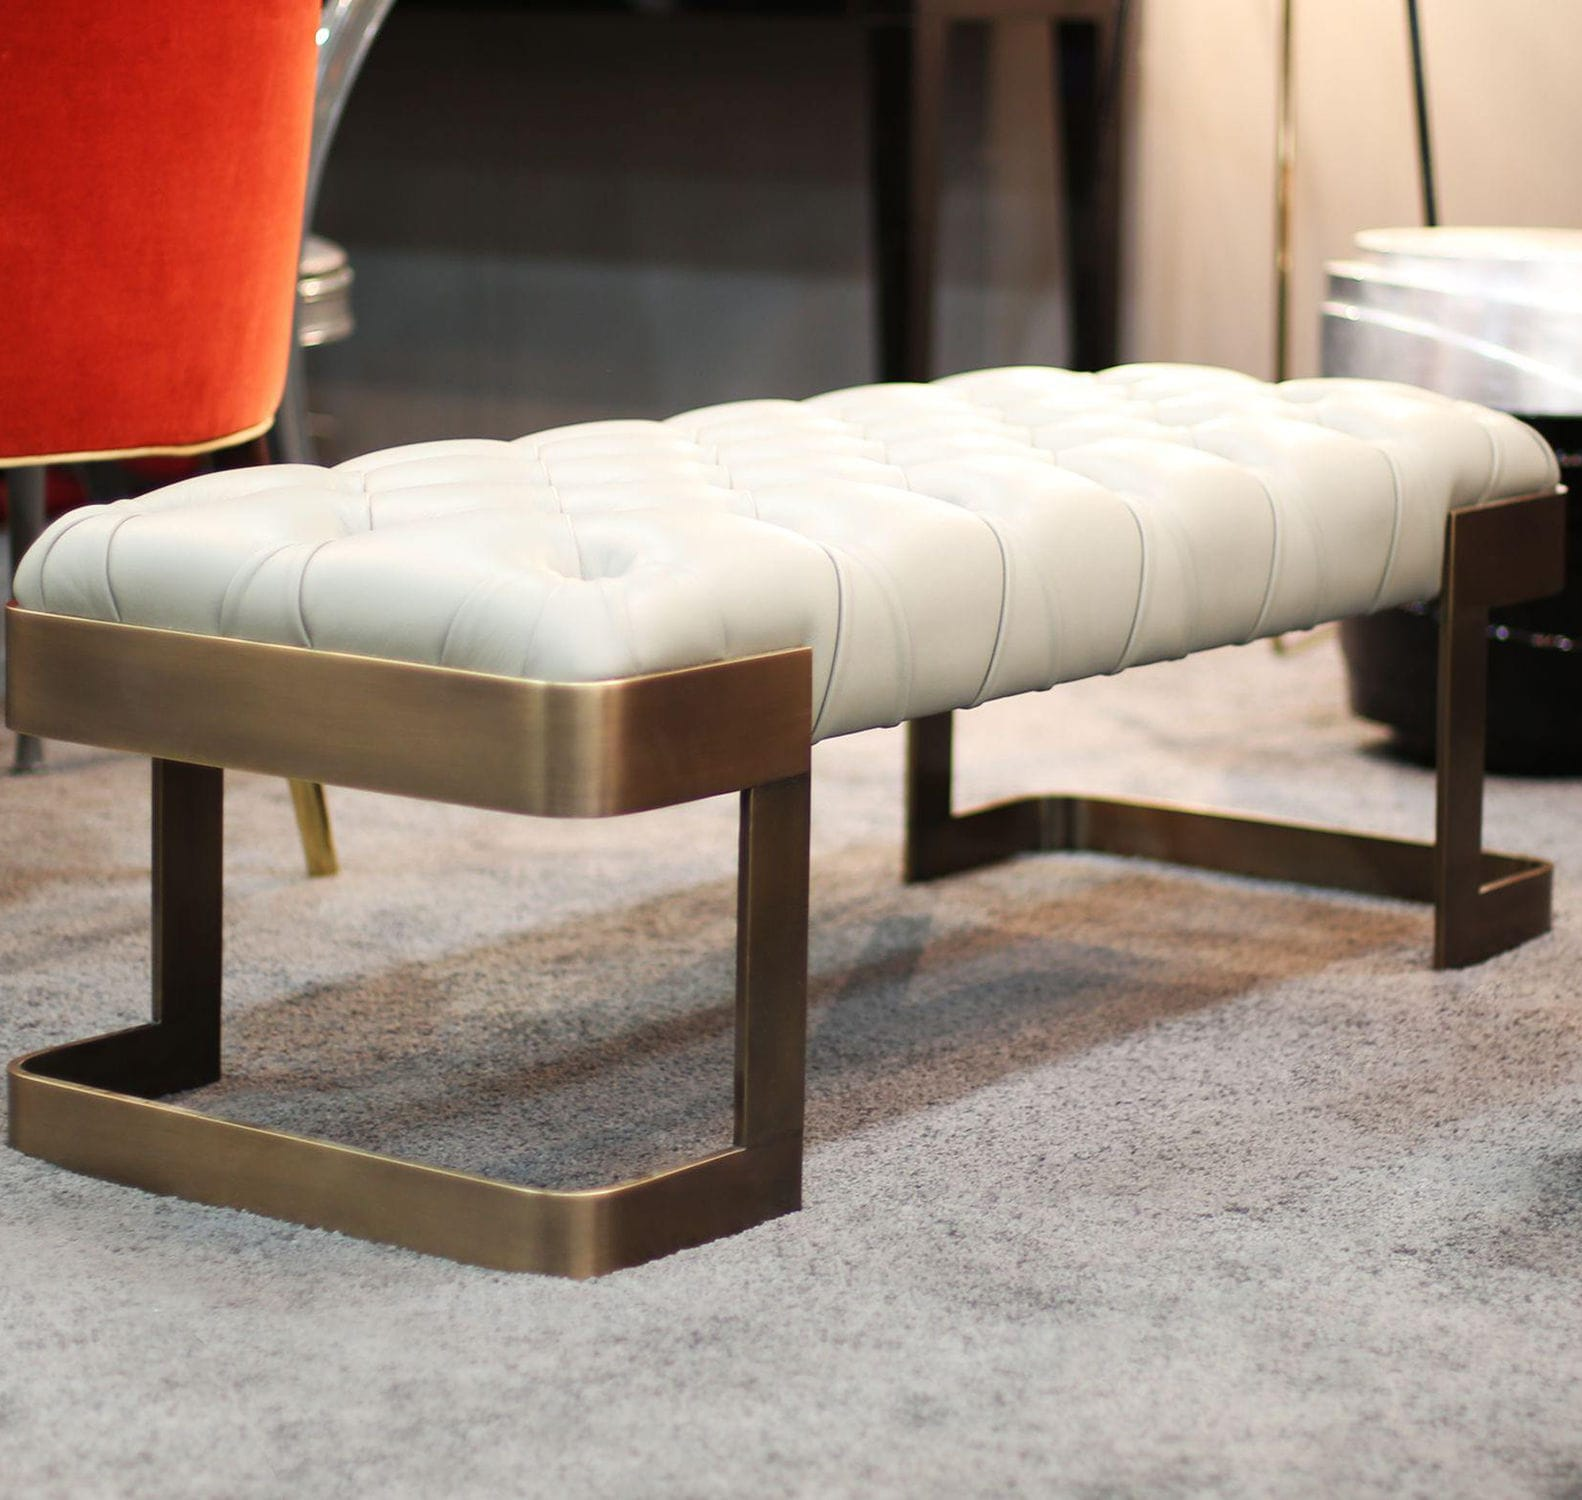 Traditional Upholstered Bench Winfrey Ottiu Leather